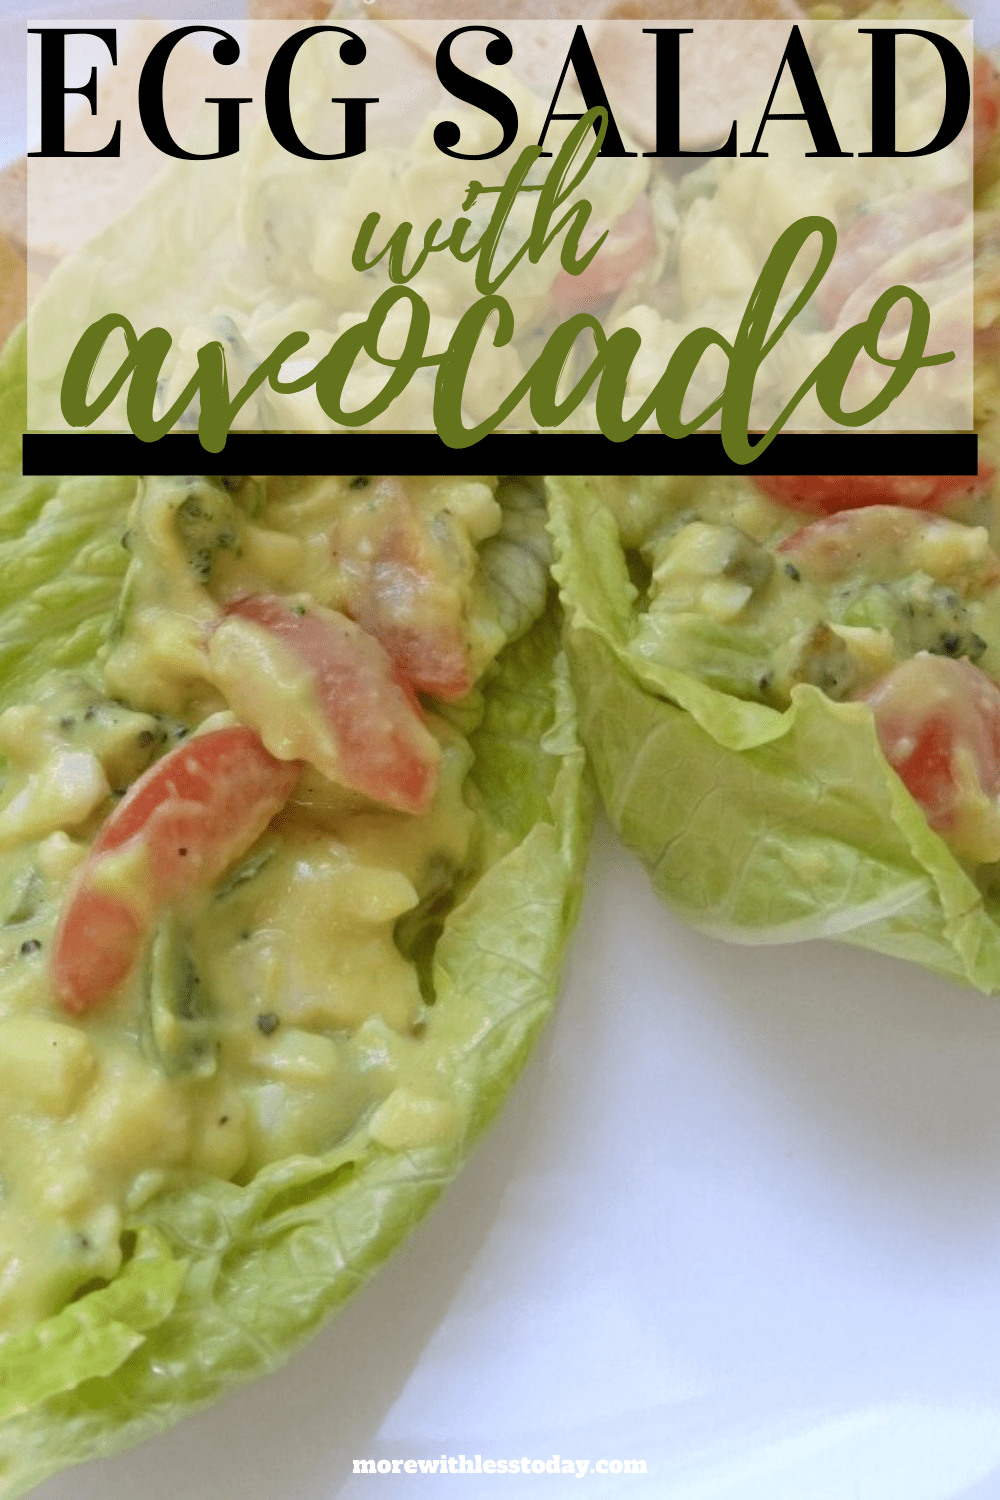 Egg Salad with Avocado recipe